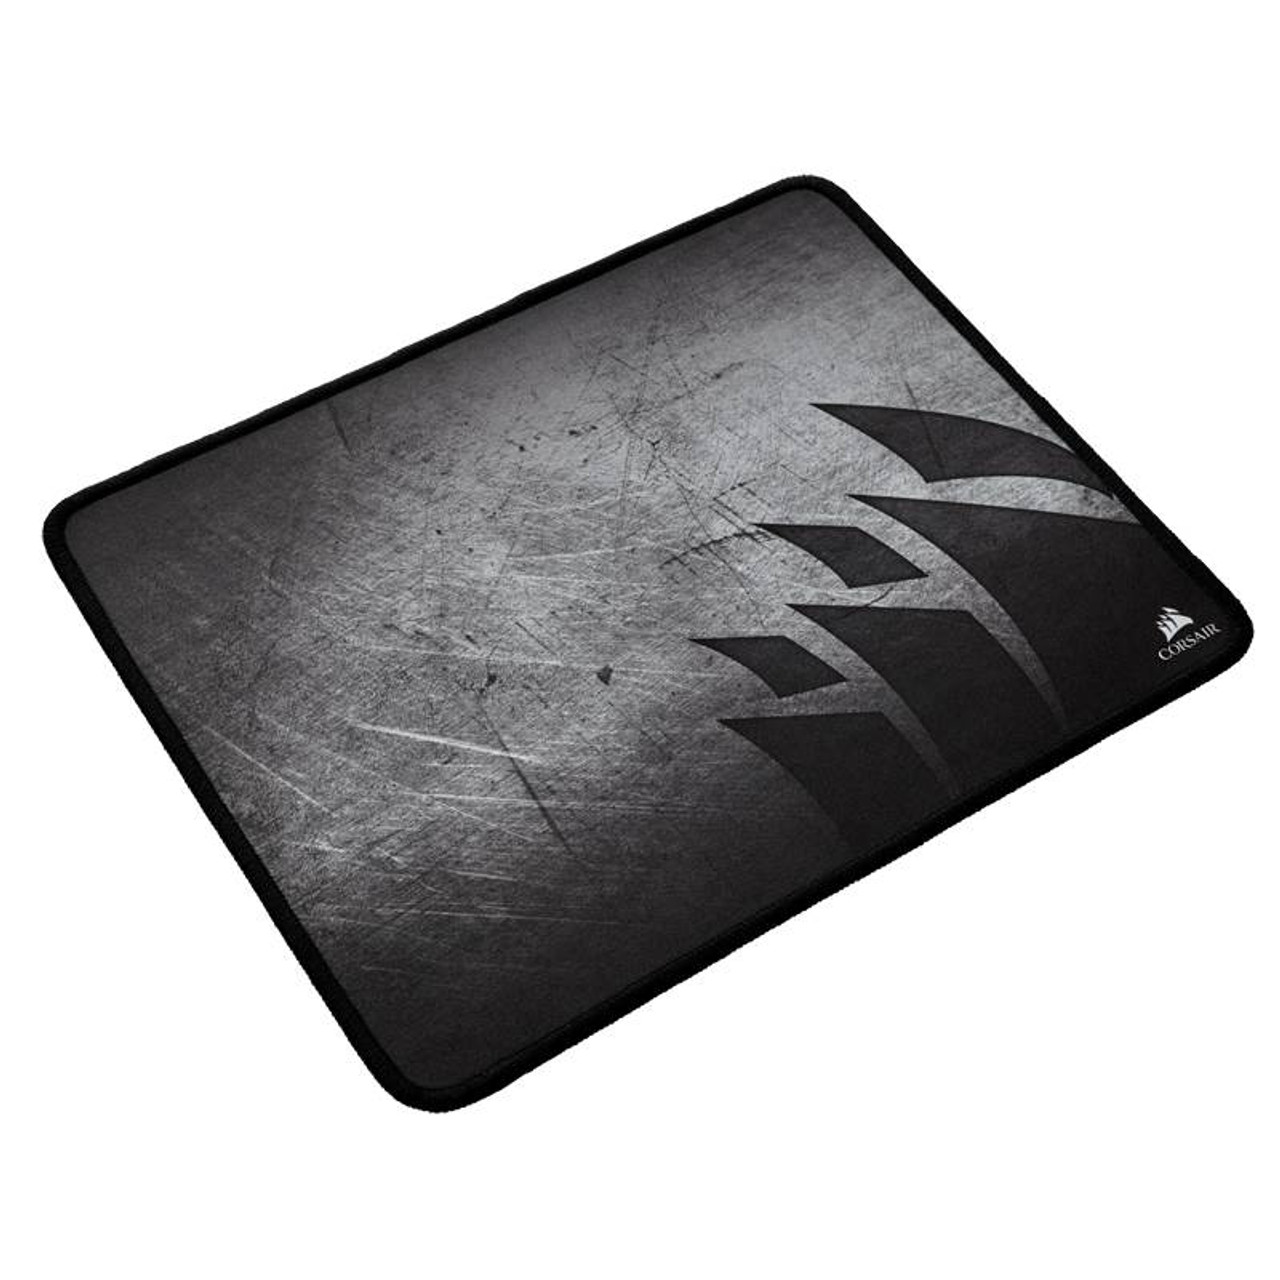 Product image for Corsair Gaming MM300 Anti-Fray Cloth Gaming Mouse Mat - Small | CX Computer Superstore